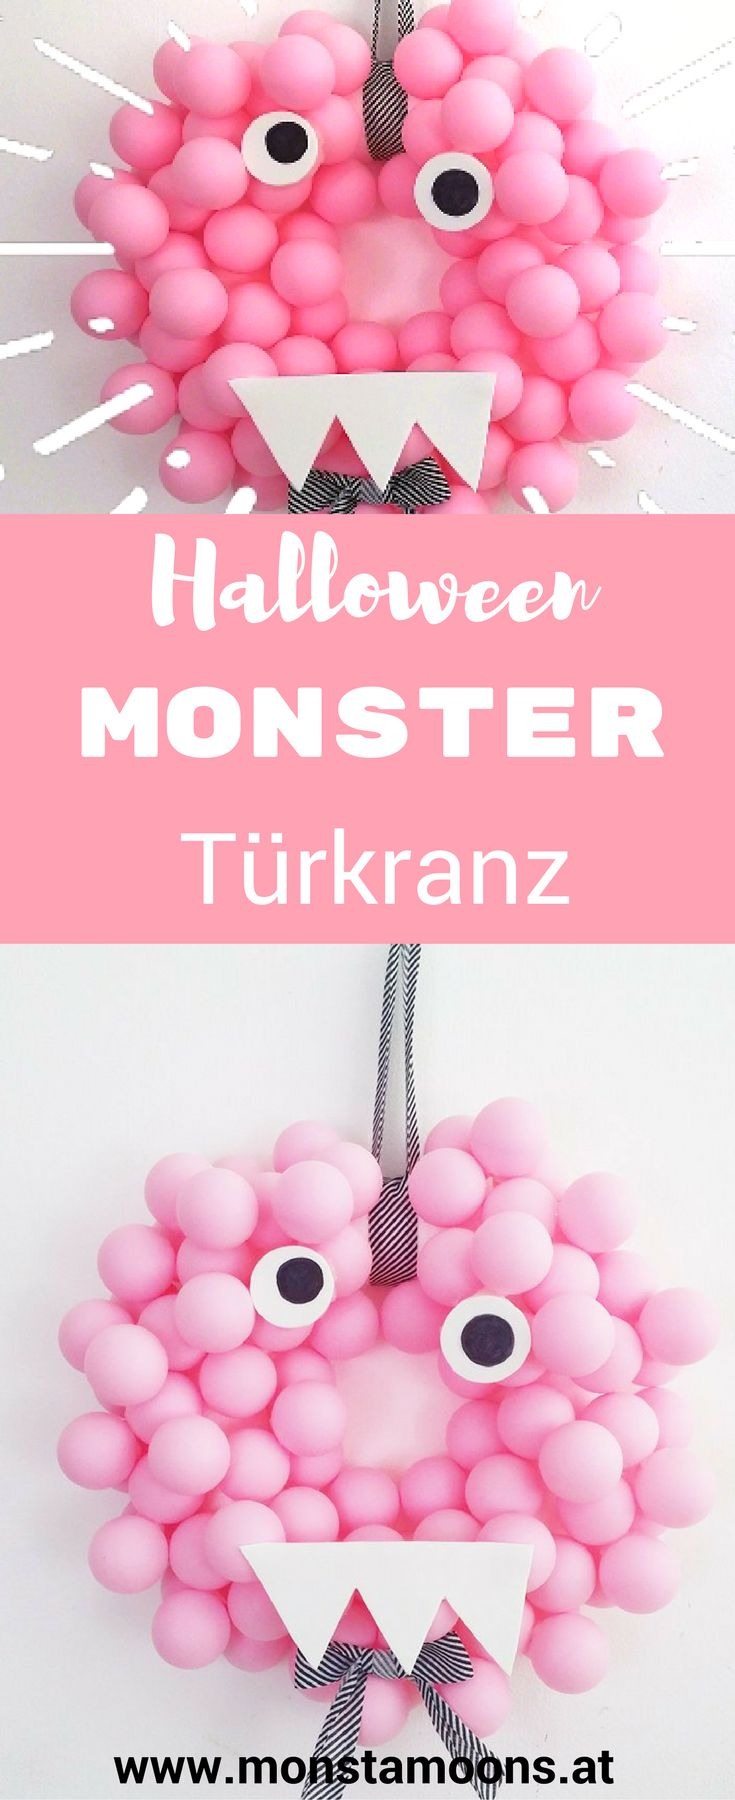 Türkranz für Halloween, Monster Türkranz, Türkranz für Kinder, Halloween Bastelideen, Halloween crafts, monster crafts, Monster basteln